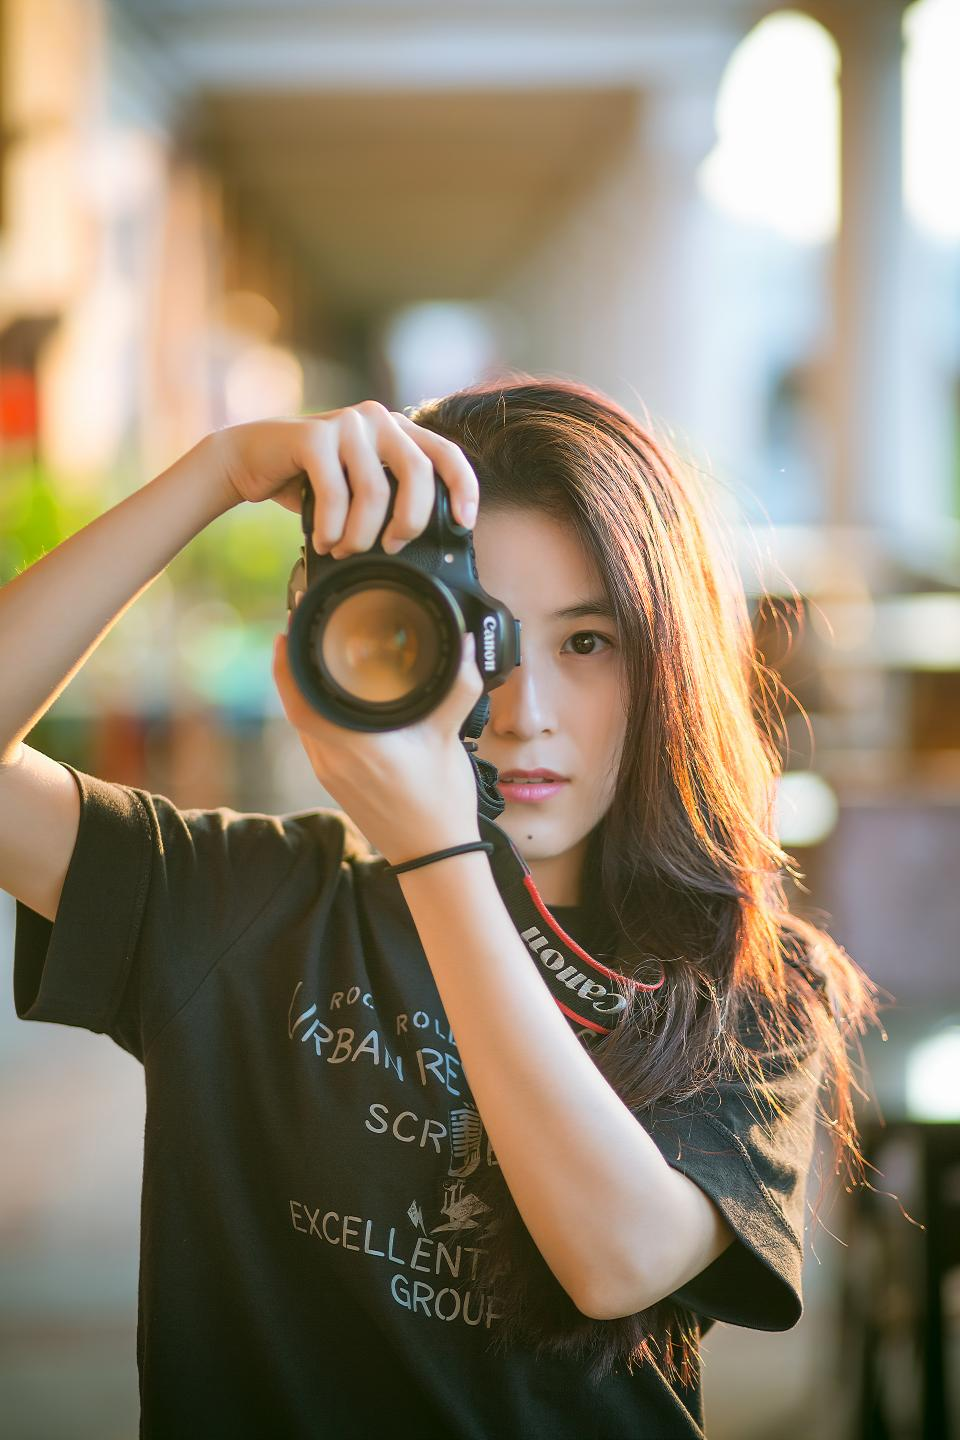 canon lens photography picture photographer people woman beauty photo